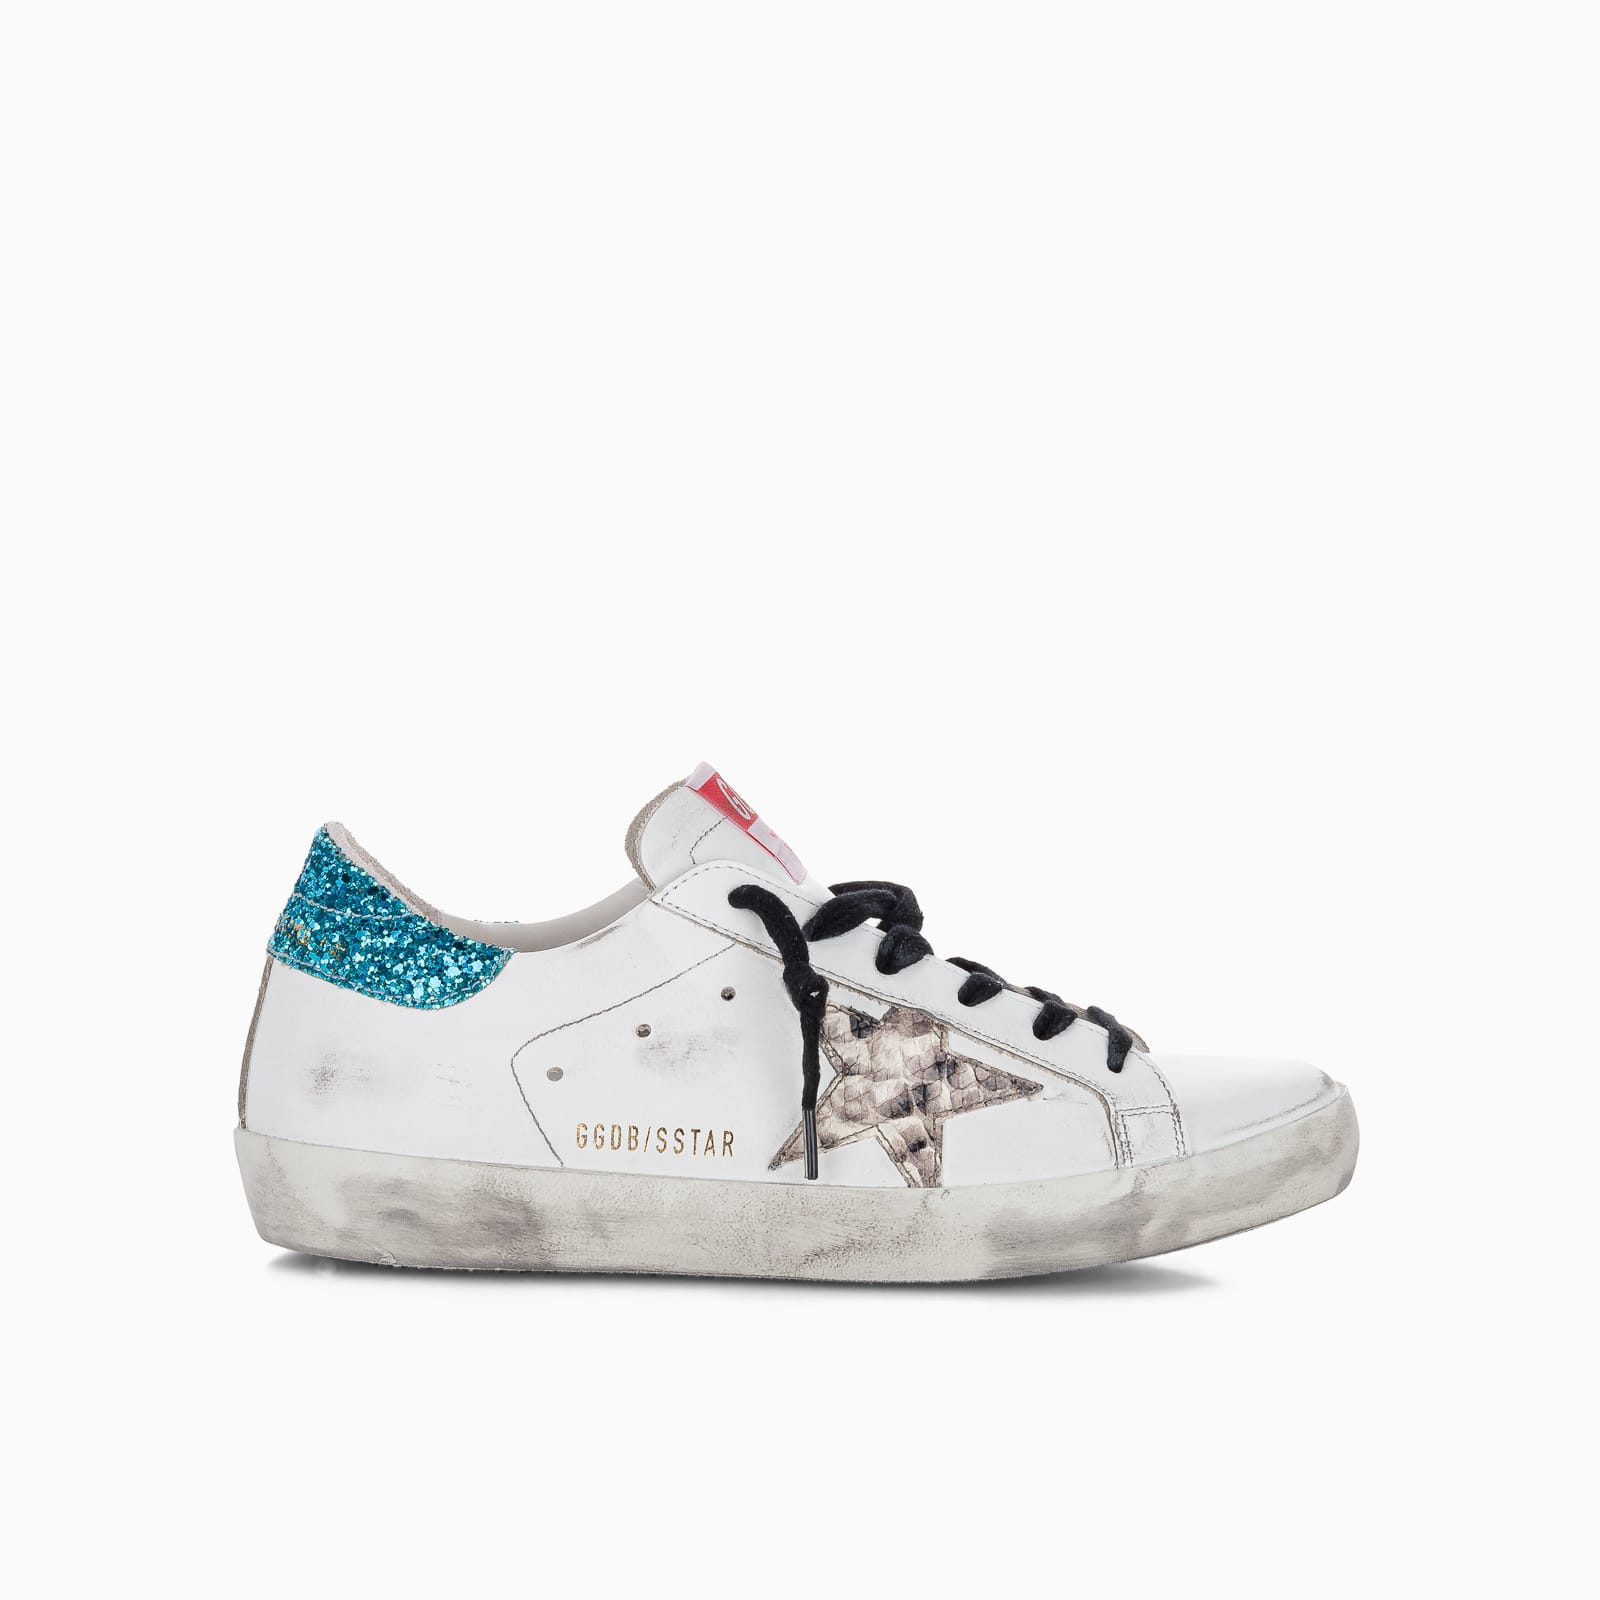 Golden Goose Superstar Sneakers With Glitter Heel Tab And Snakeprint Star